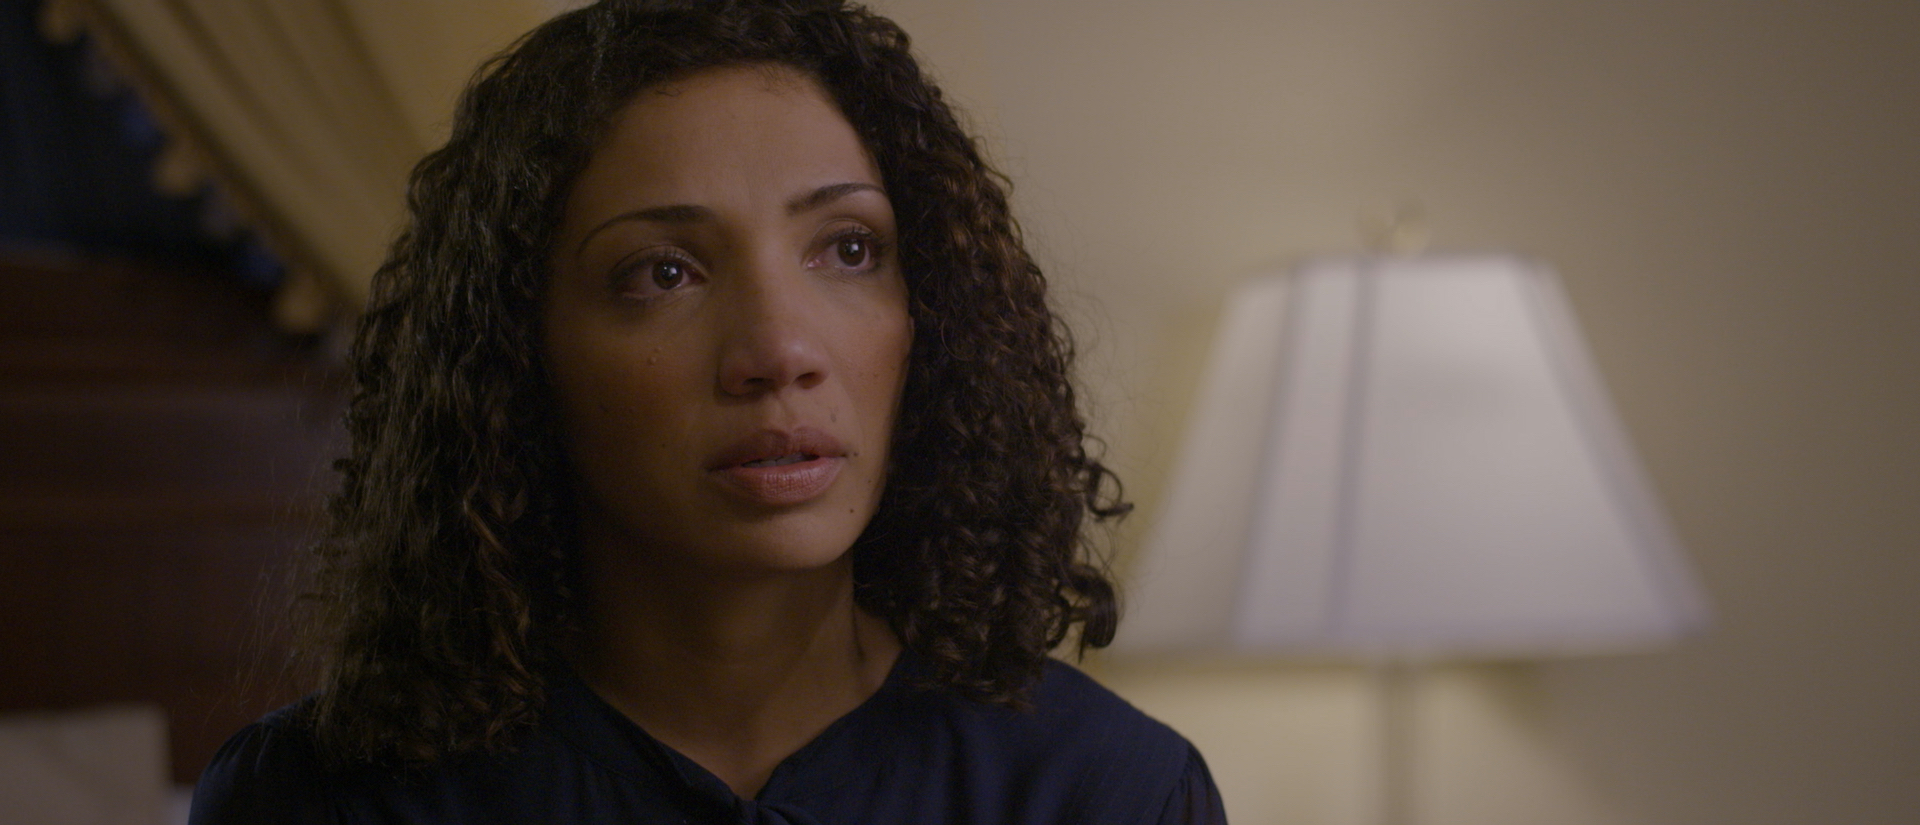 Somewhere In The Middle - Jasika Nicole, A Christmas in New York